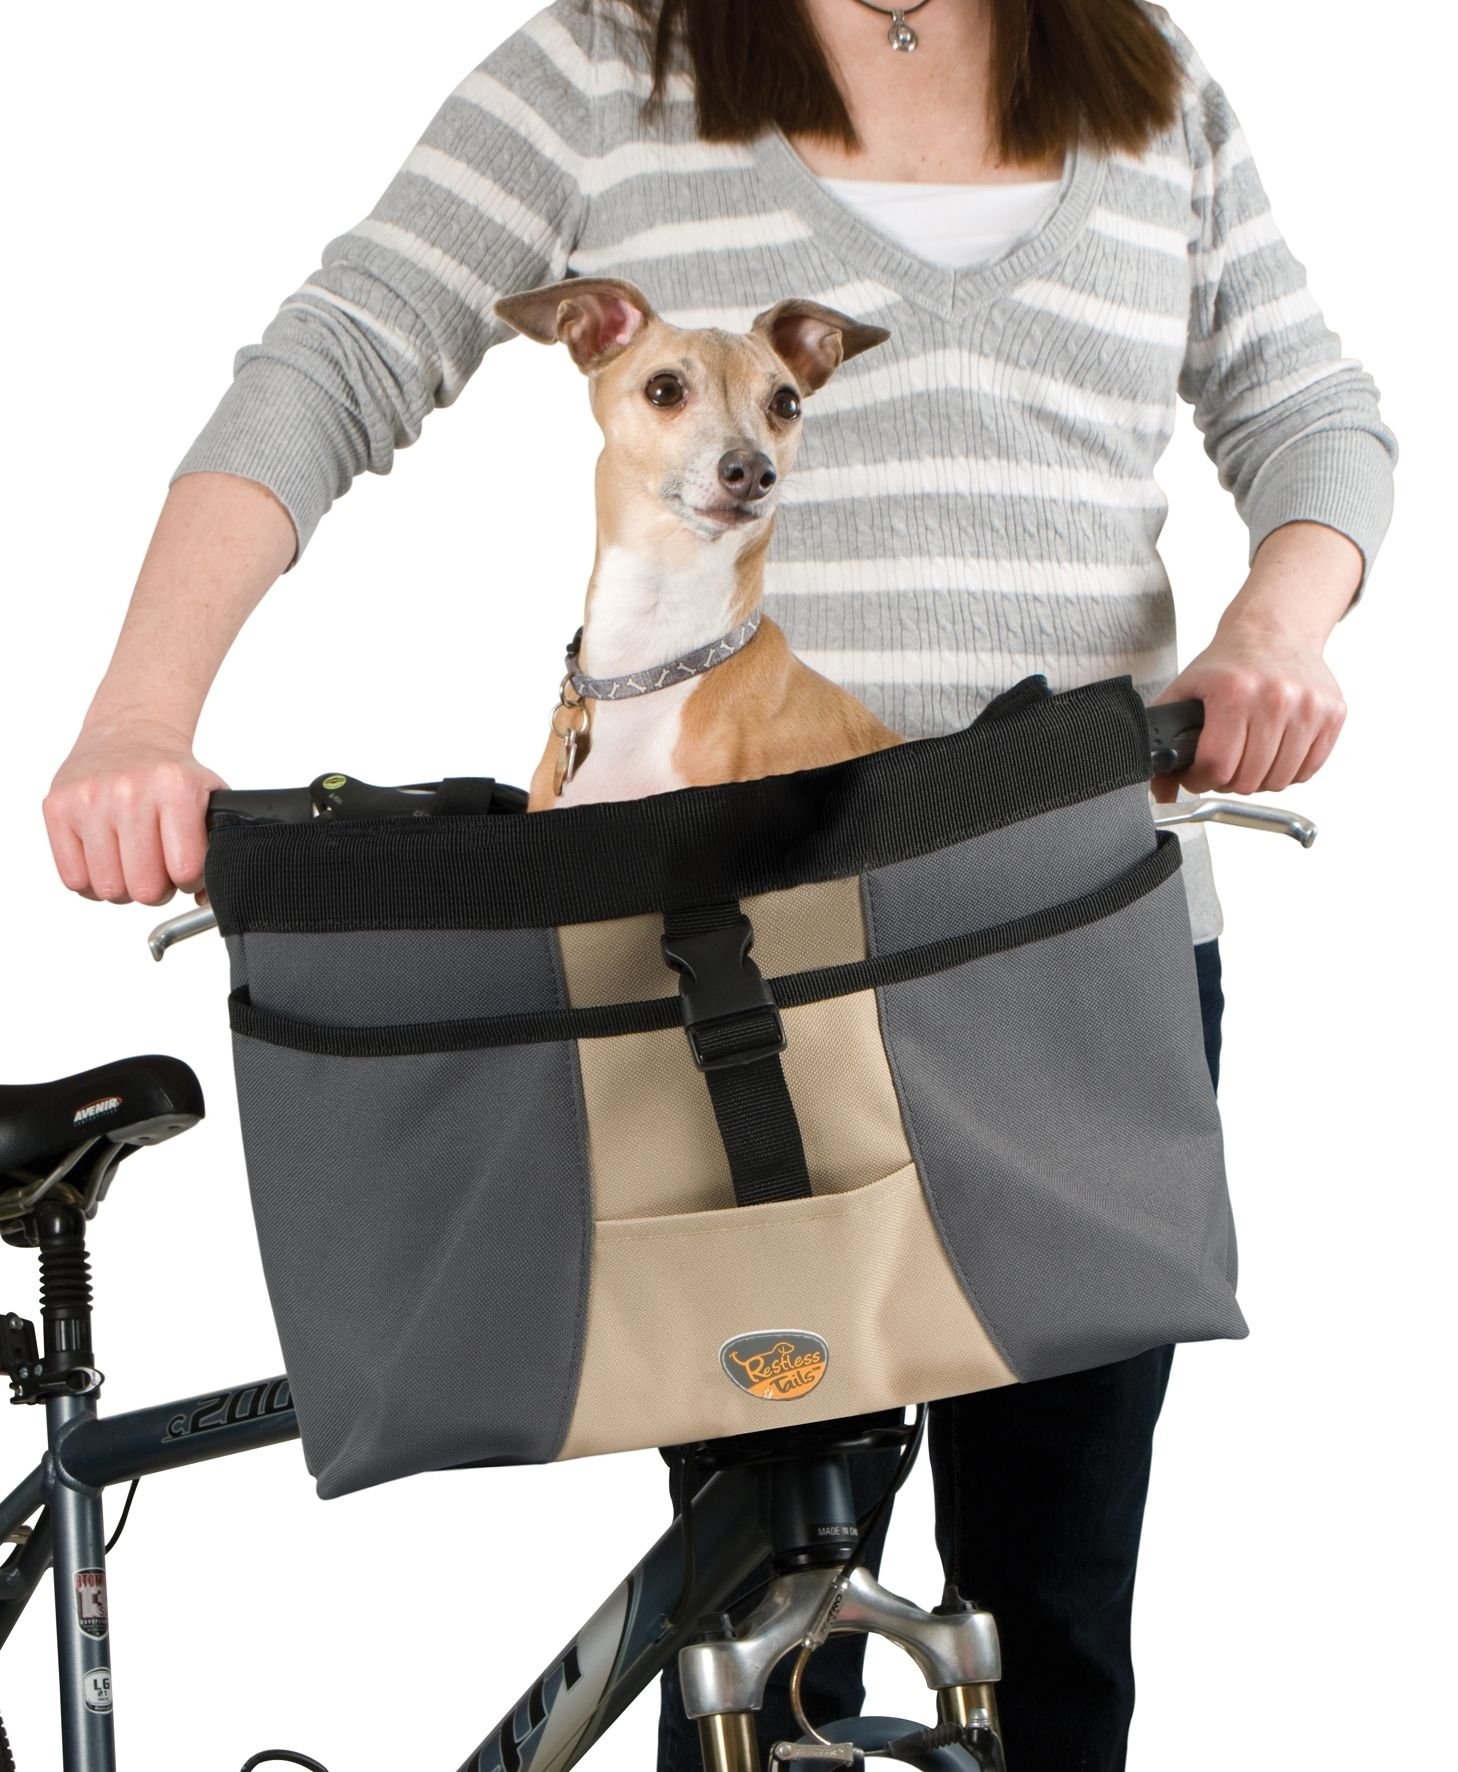 Restless Tails Front Bicycle Basket/Carrier for Pets